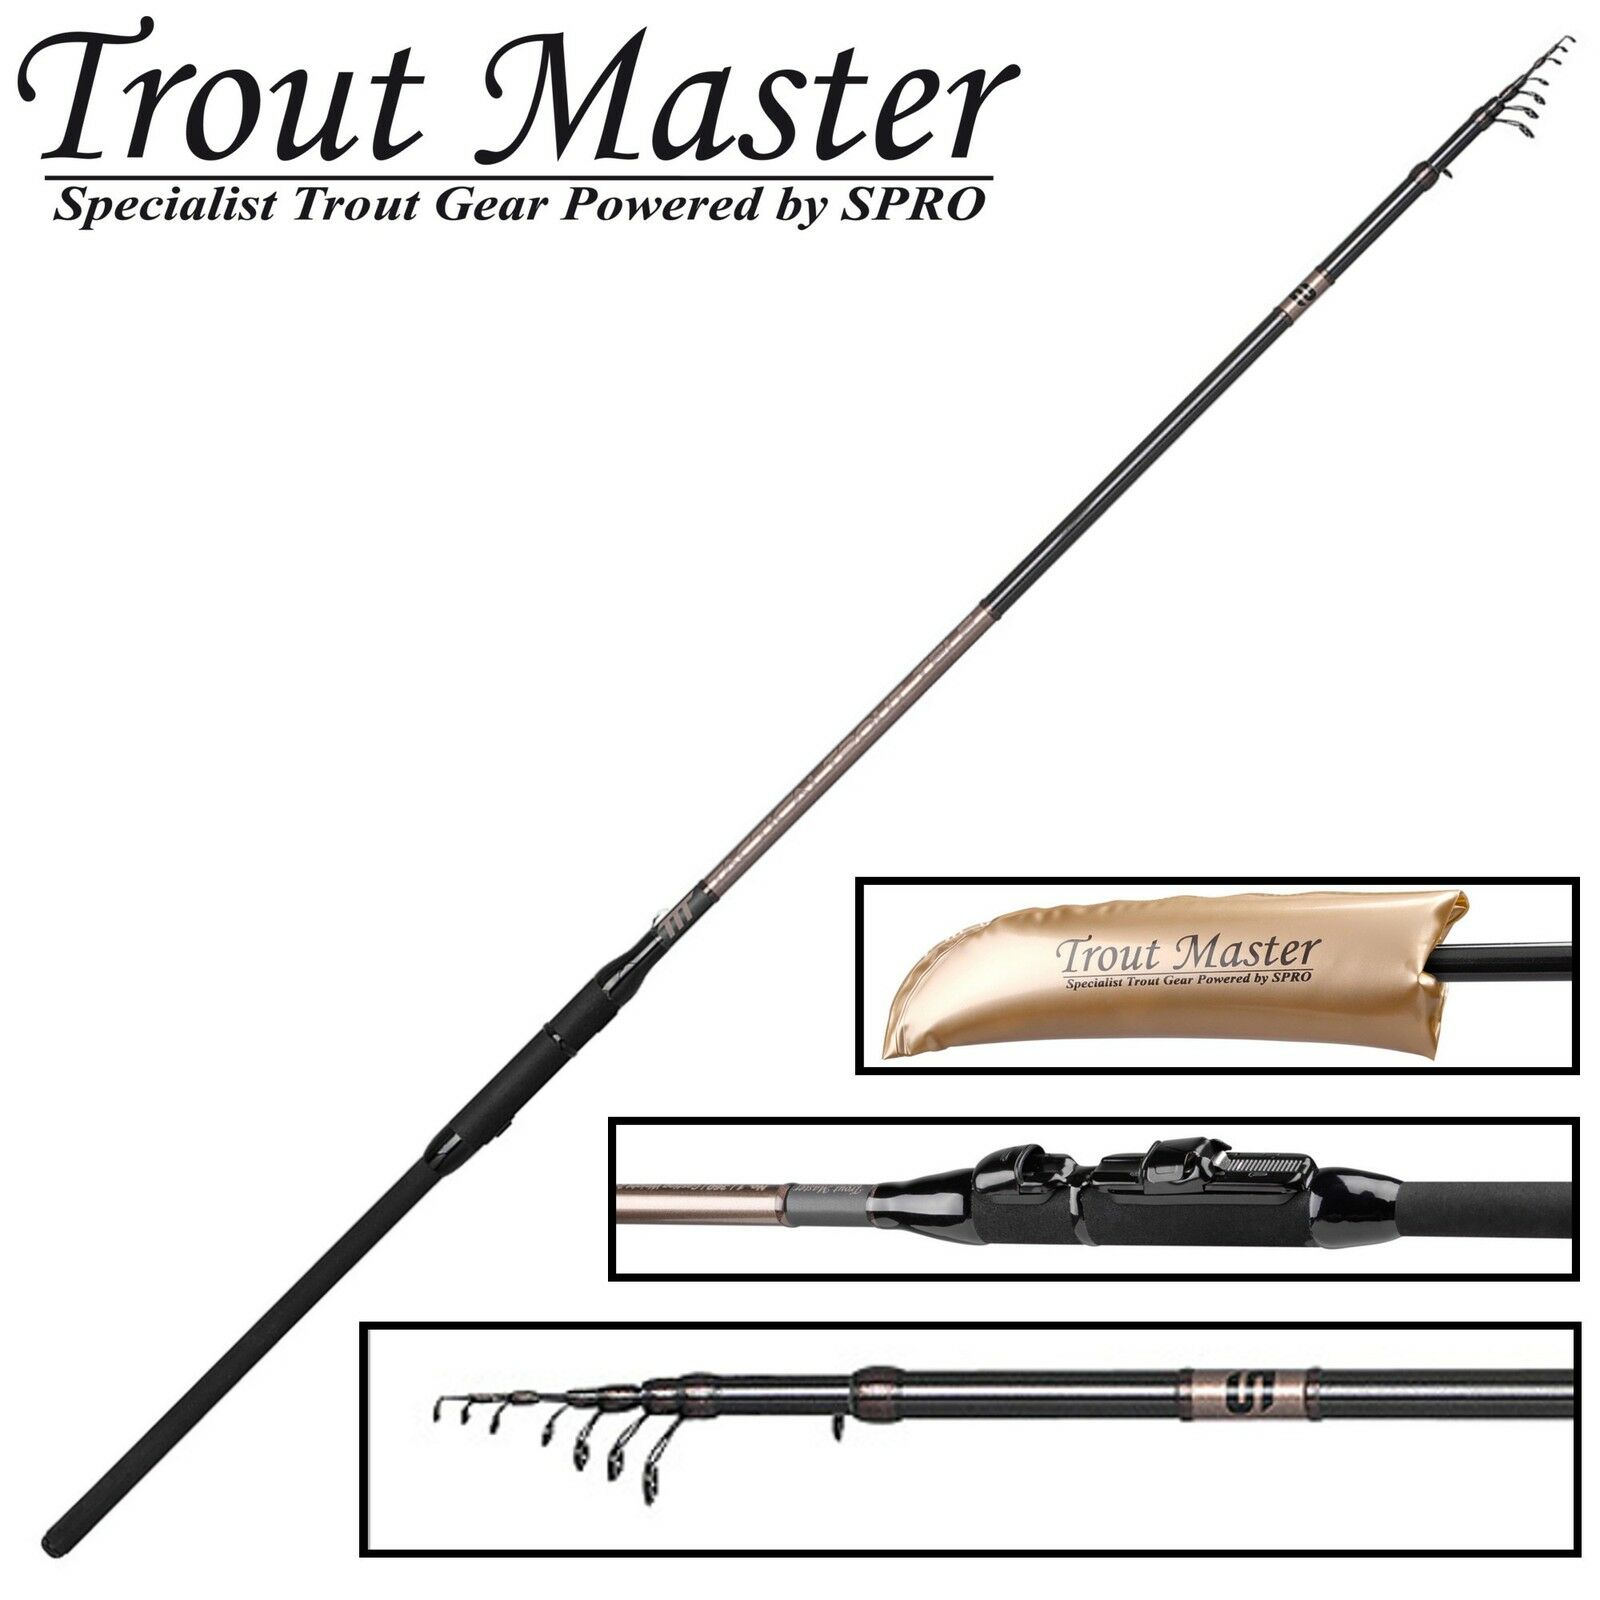 Trout Master Tactical Trout tele 3,90m 20-40g - TrossoE stadia, telescopico stadia